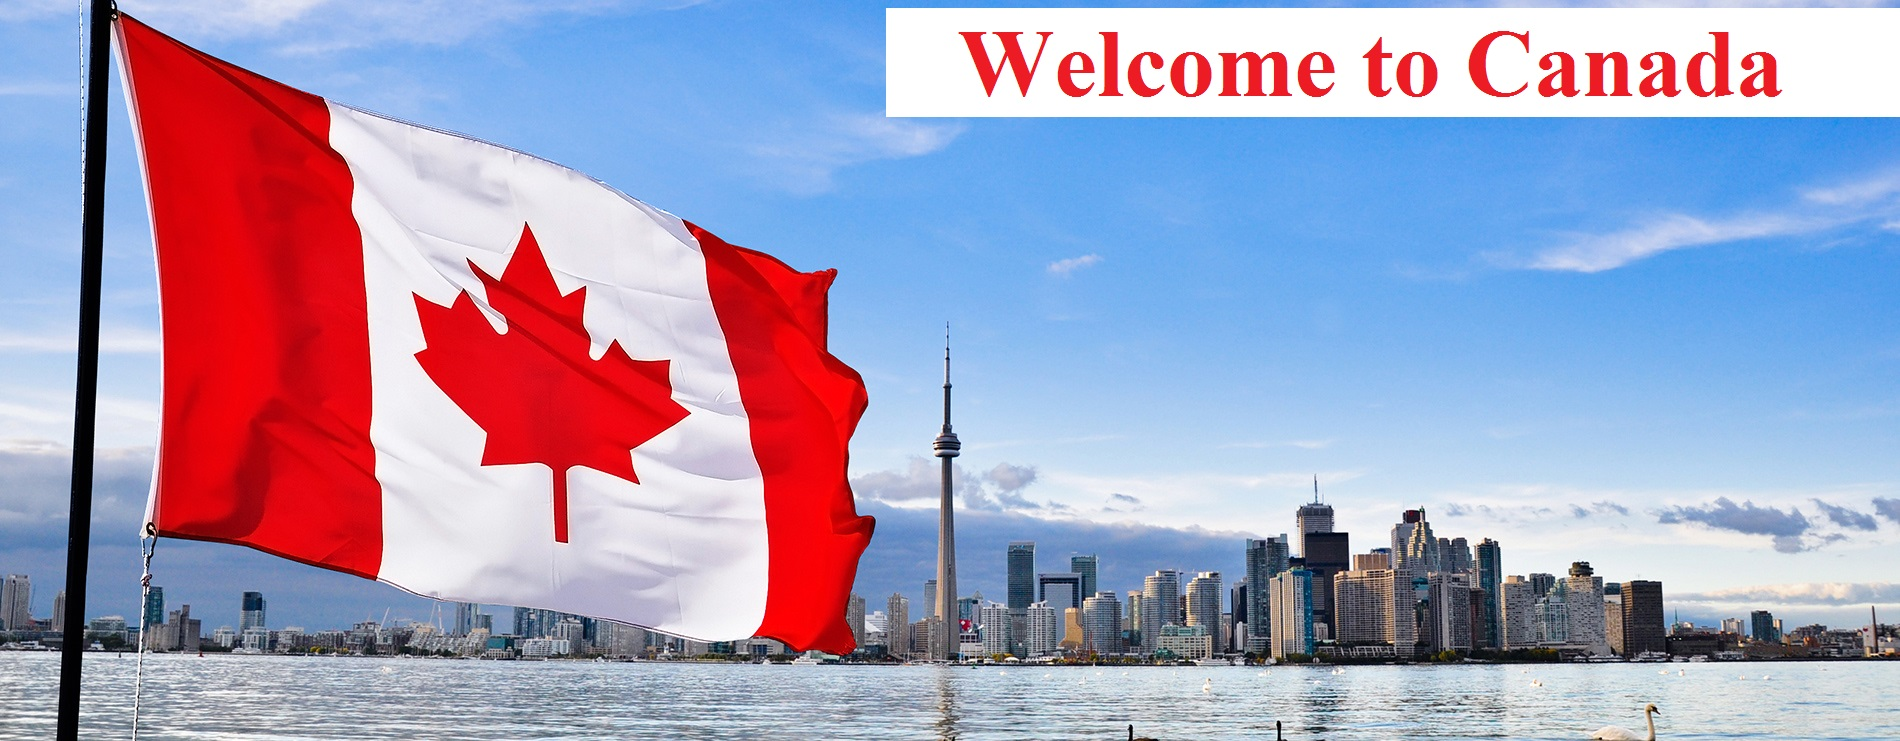 How To Apply For Canada Student Visa From Nigeria